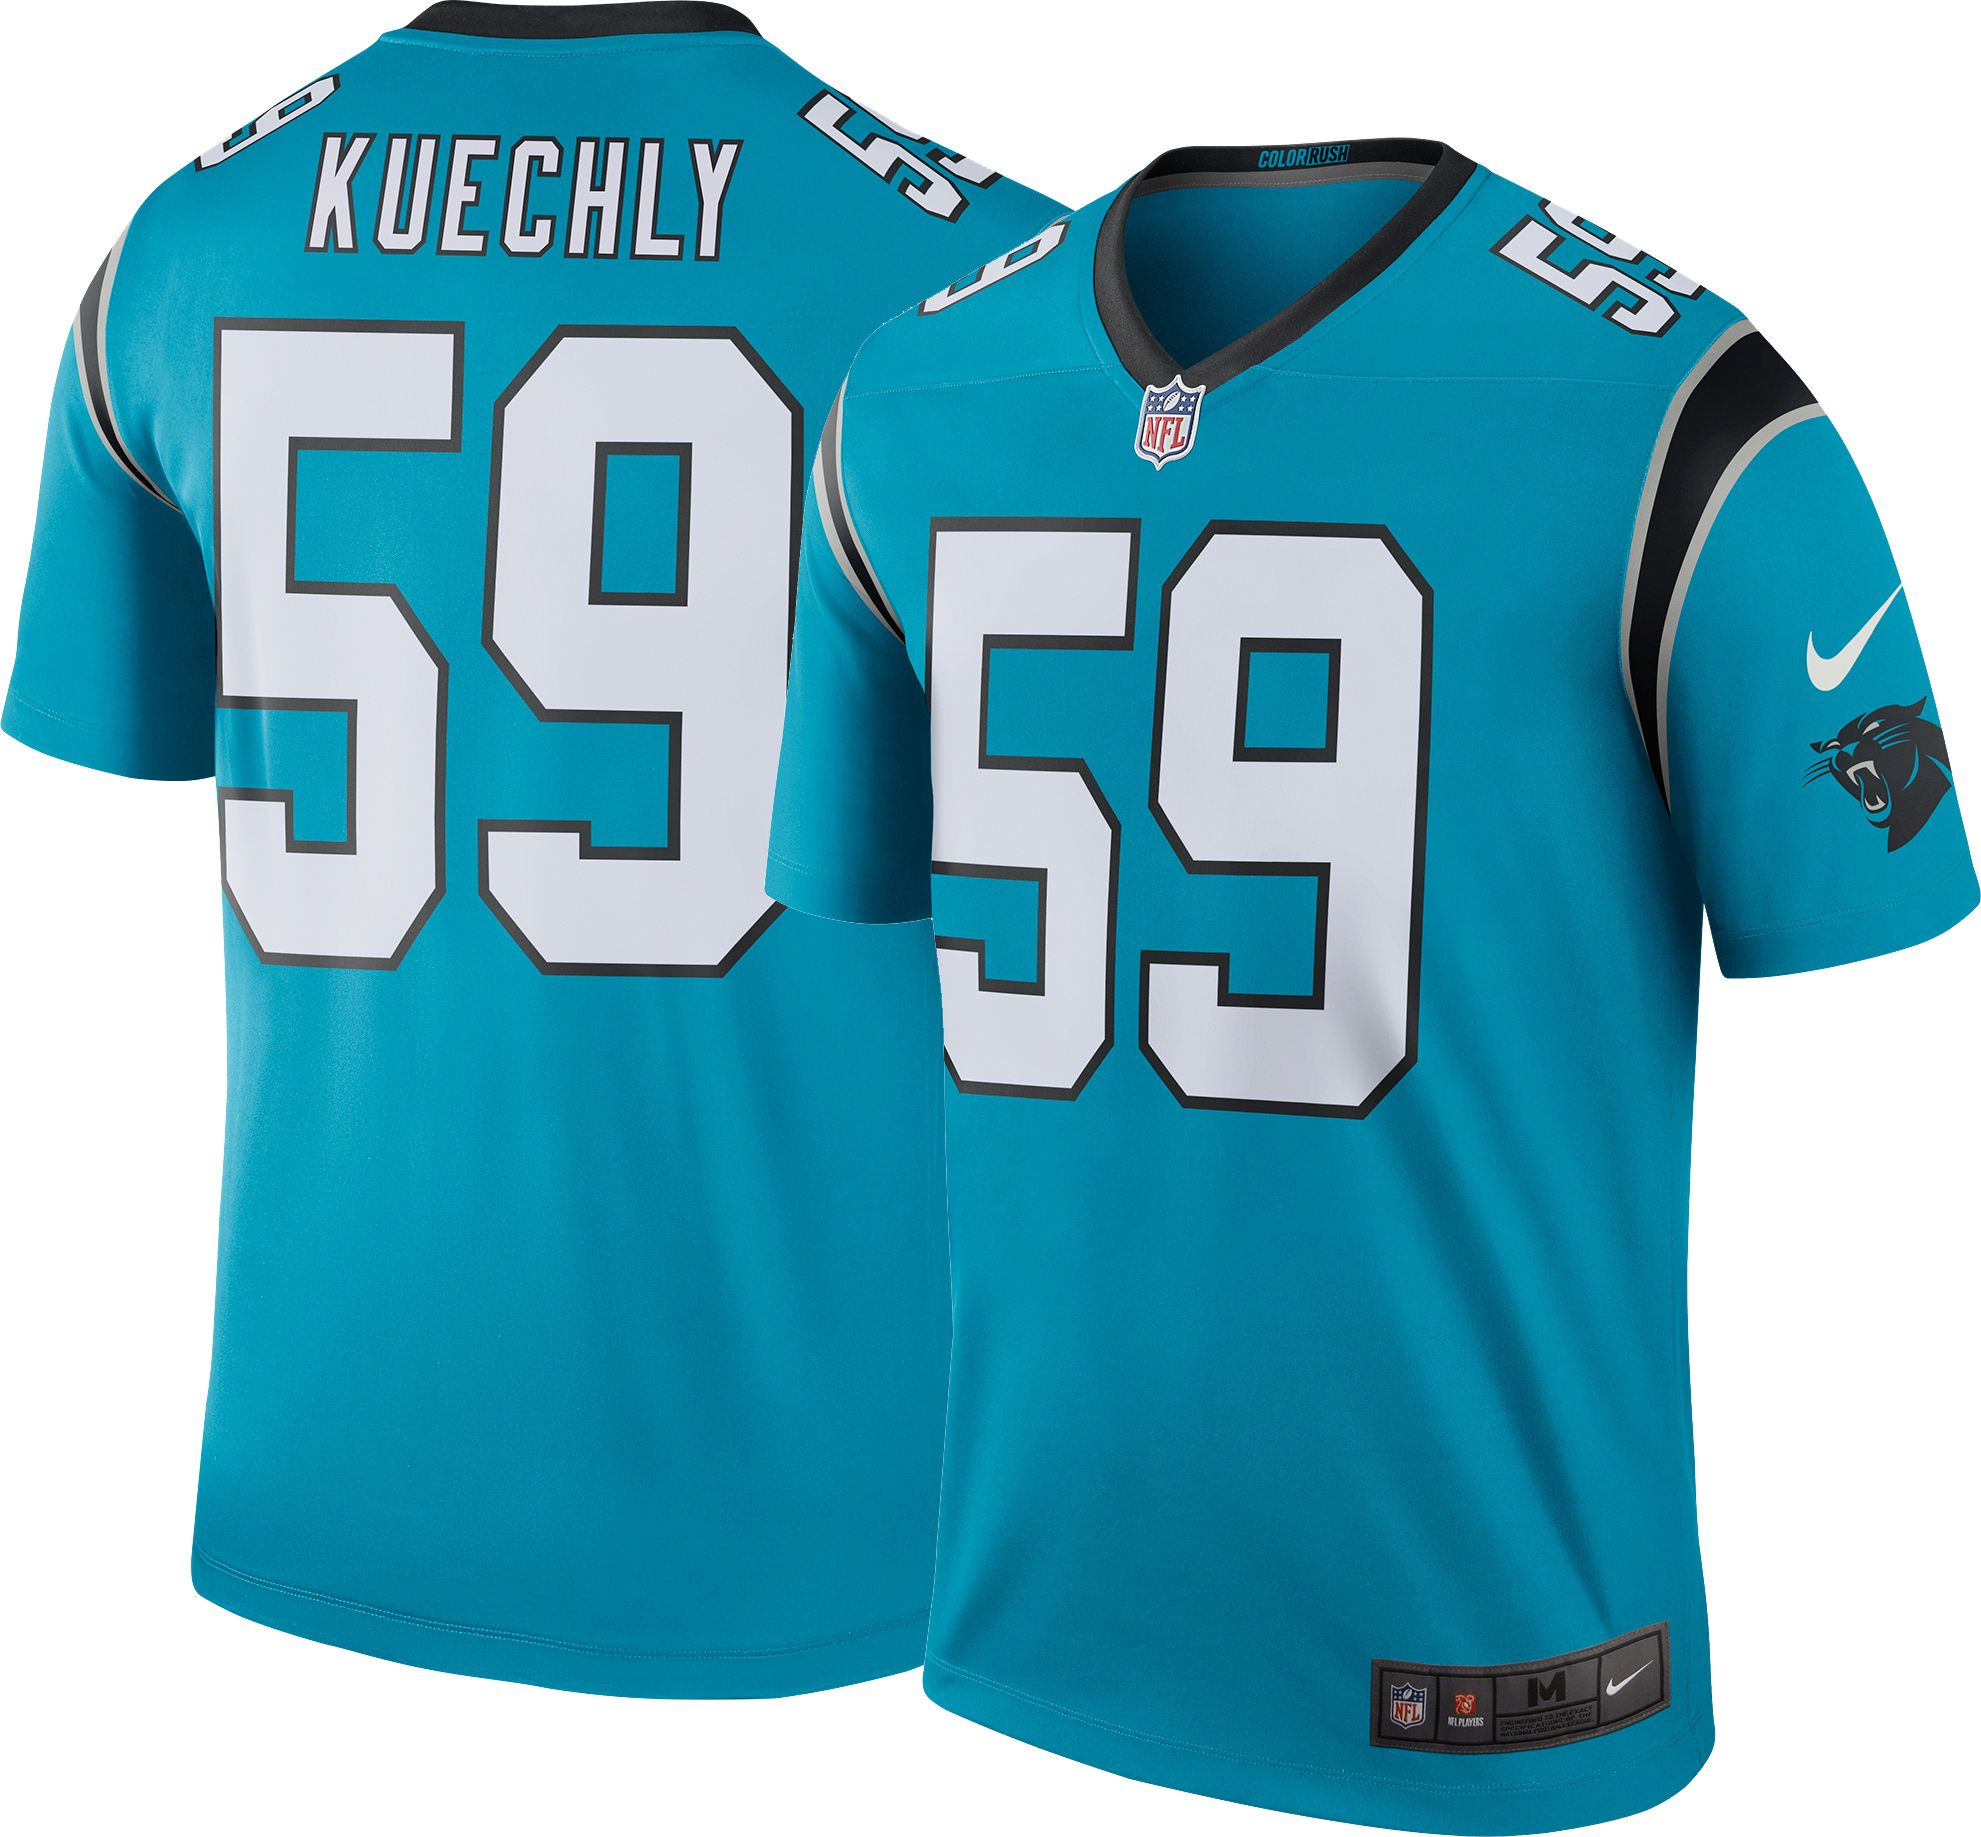 7a9e34b12 ... Adult Home Throwback NFL Jersey Nike Mens Color Rush 2016 Carolina  Panthers Luke Kuechly 59 ...